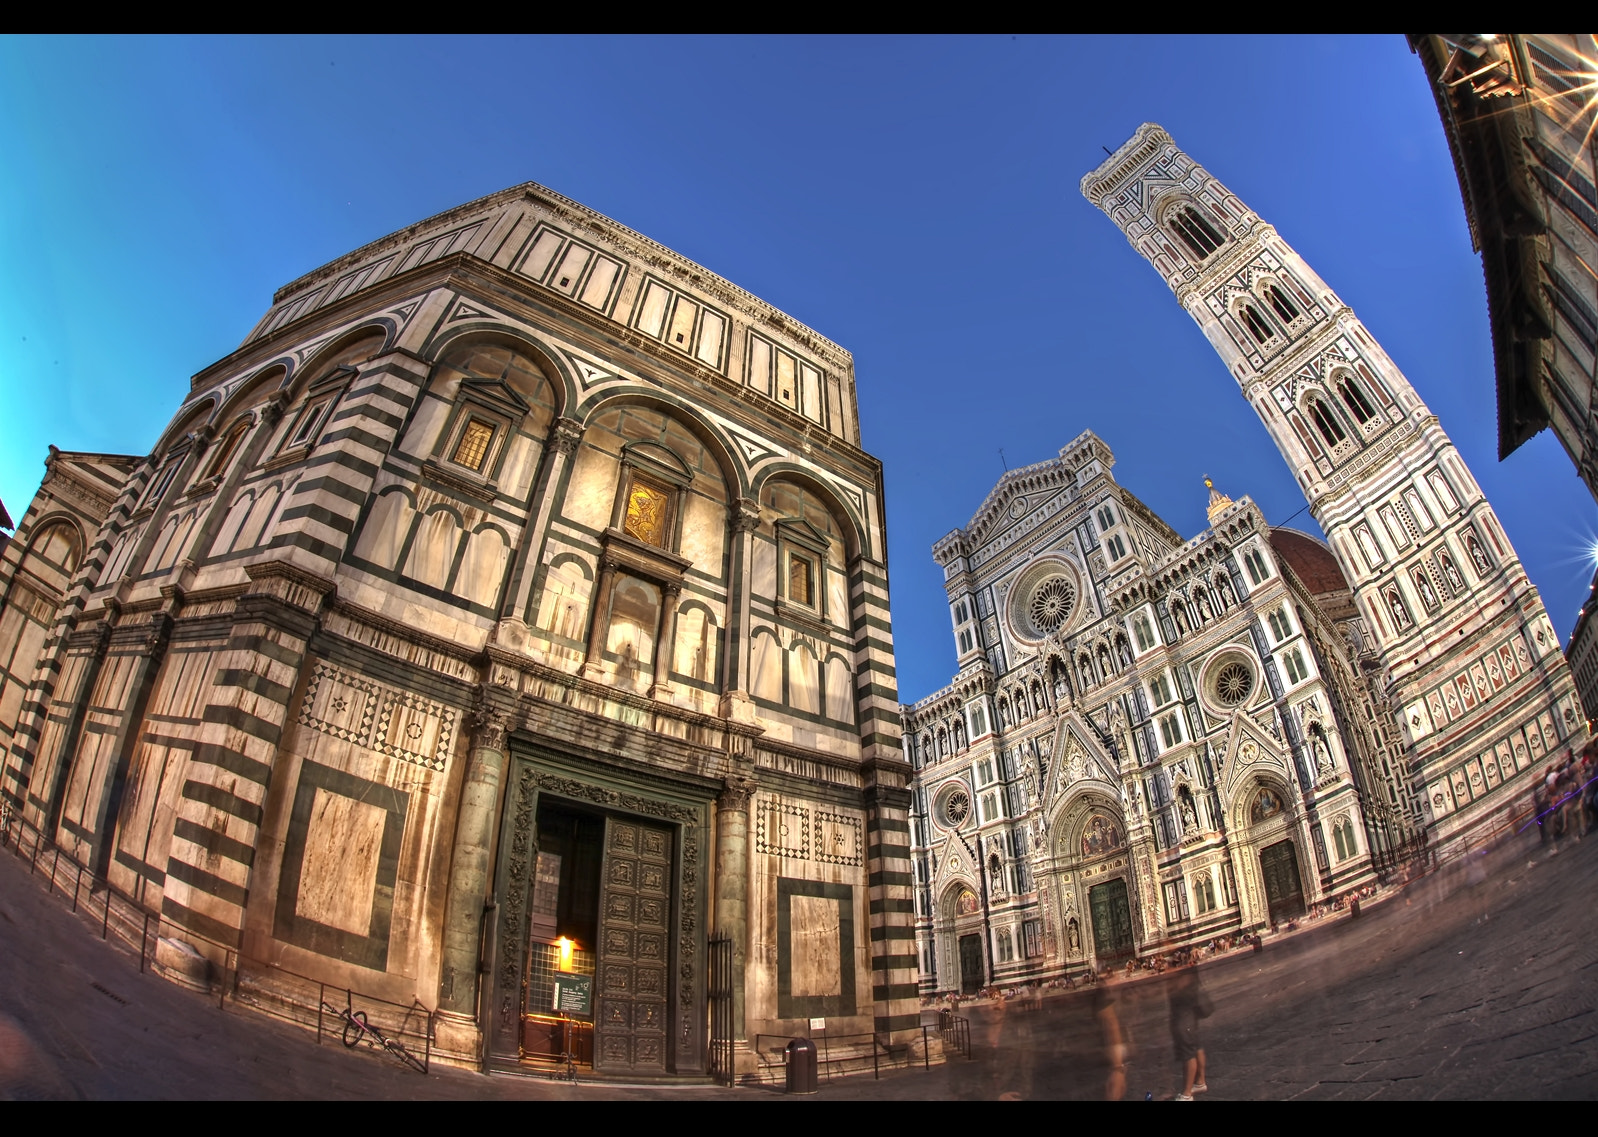 Photograph *Piazza del Duomo - Florence* by erhan sasmaz on 500px